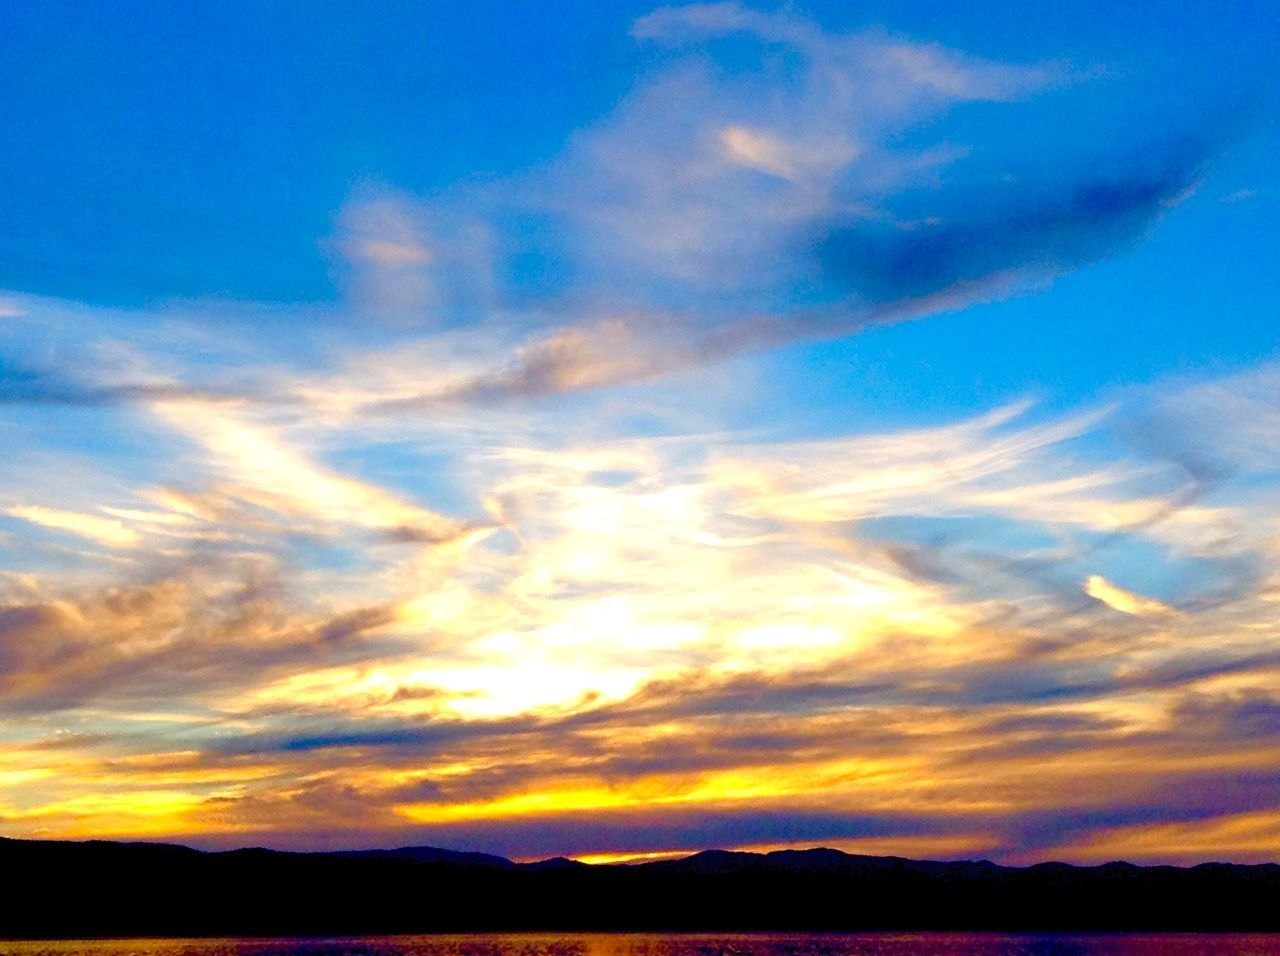 sky, scenics, beauty in nature, sunset, nature, cloud - sky, tranquil scene, tranquility, silhouette, outdoors, no people, day